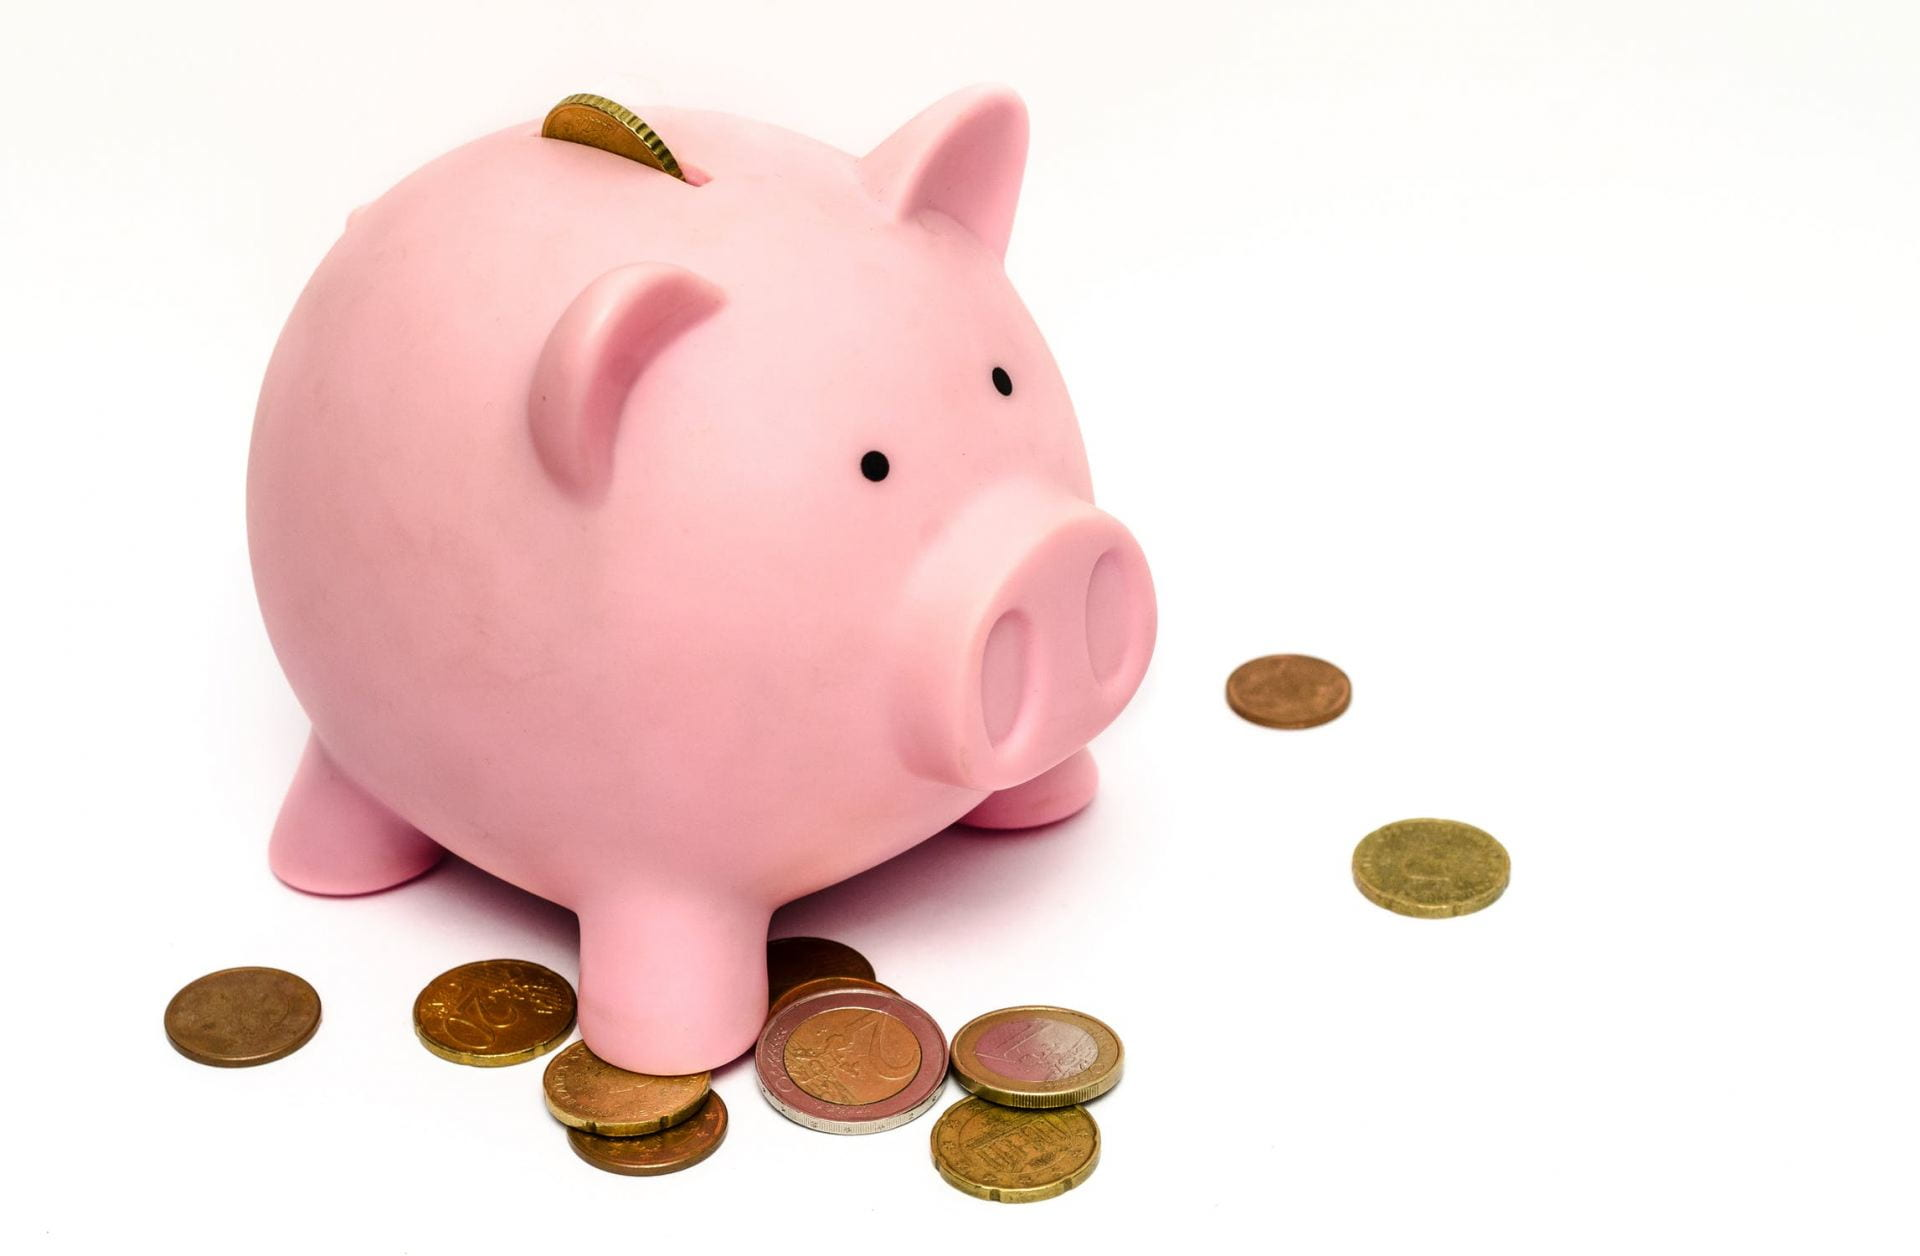 A pink piggy bank with a coin poking out. Around the bank are more coins.